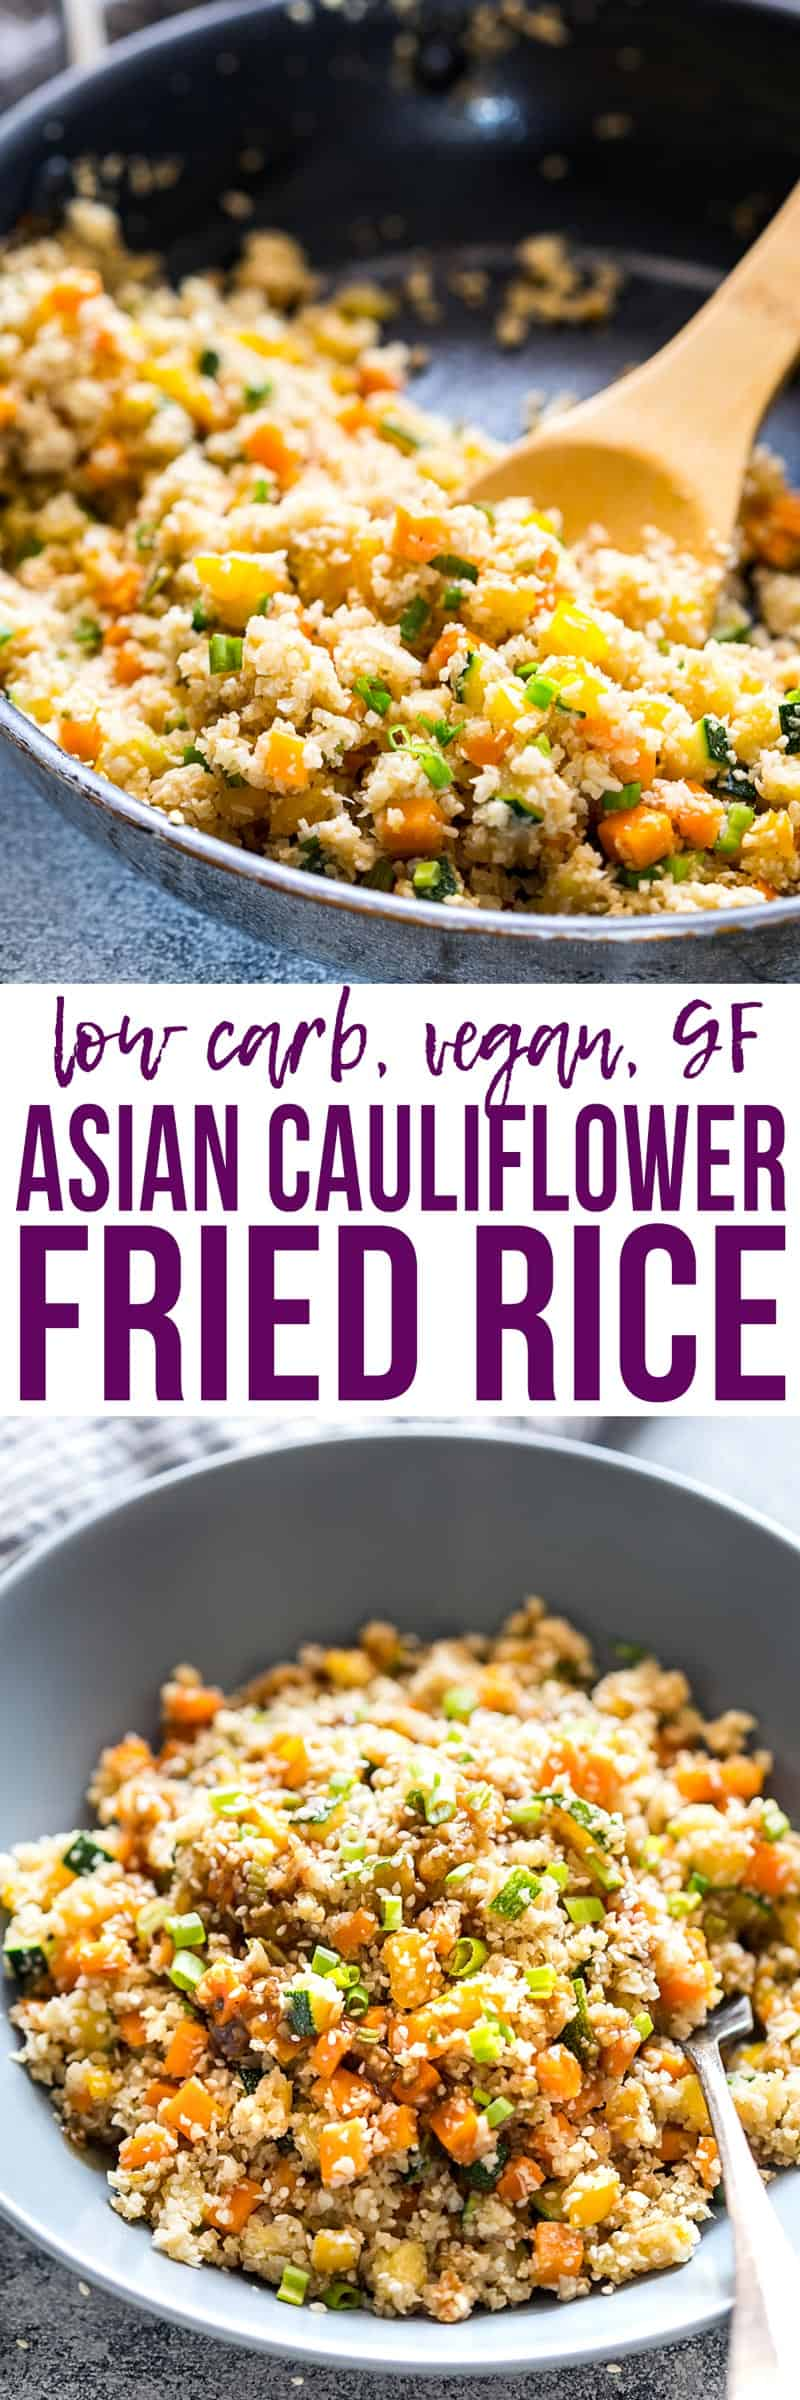 Learn how to cook Low Carb Asian Cauliflower Rice which is a healthy take on fried rice thats vegan, gluten free & keto friendly. Ready in twenty minutes and loaded with veggies! Easily made paleo too.